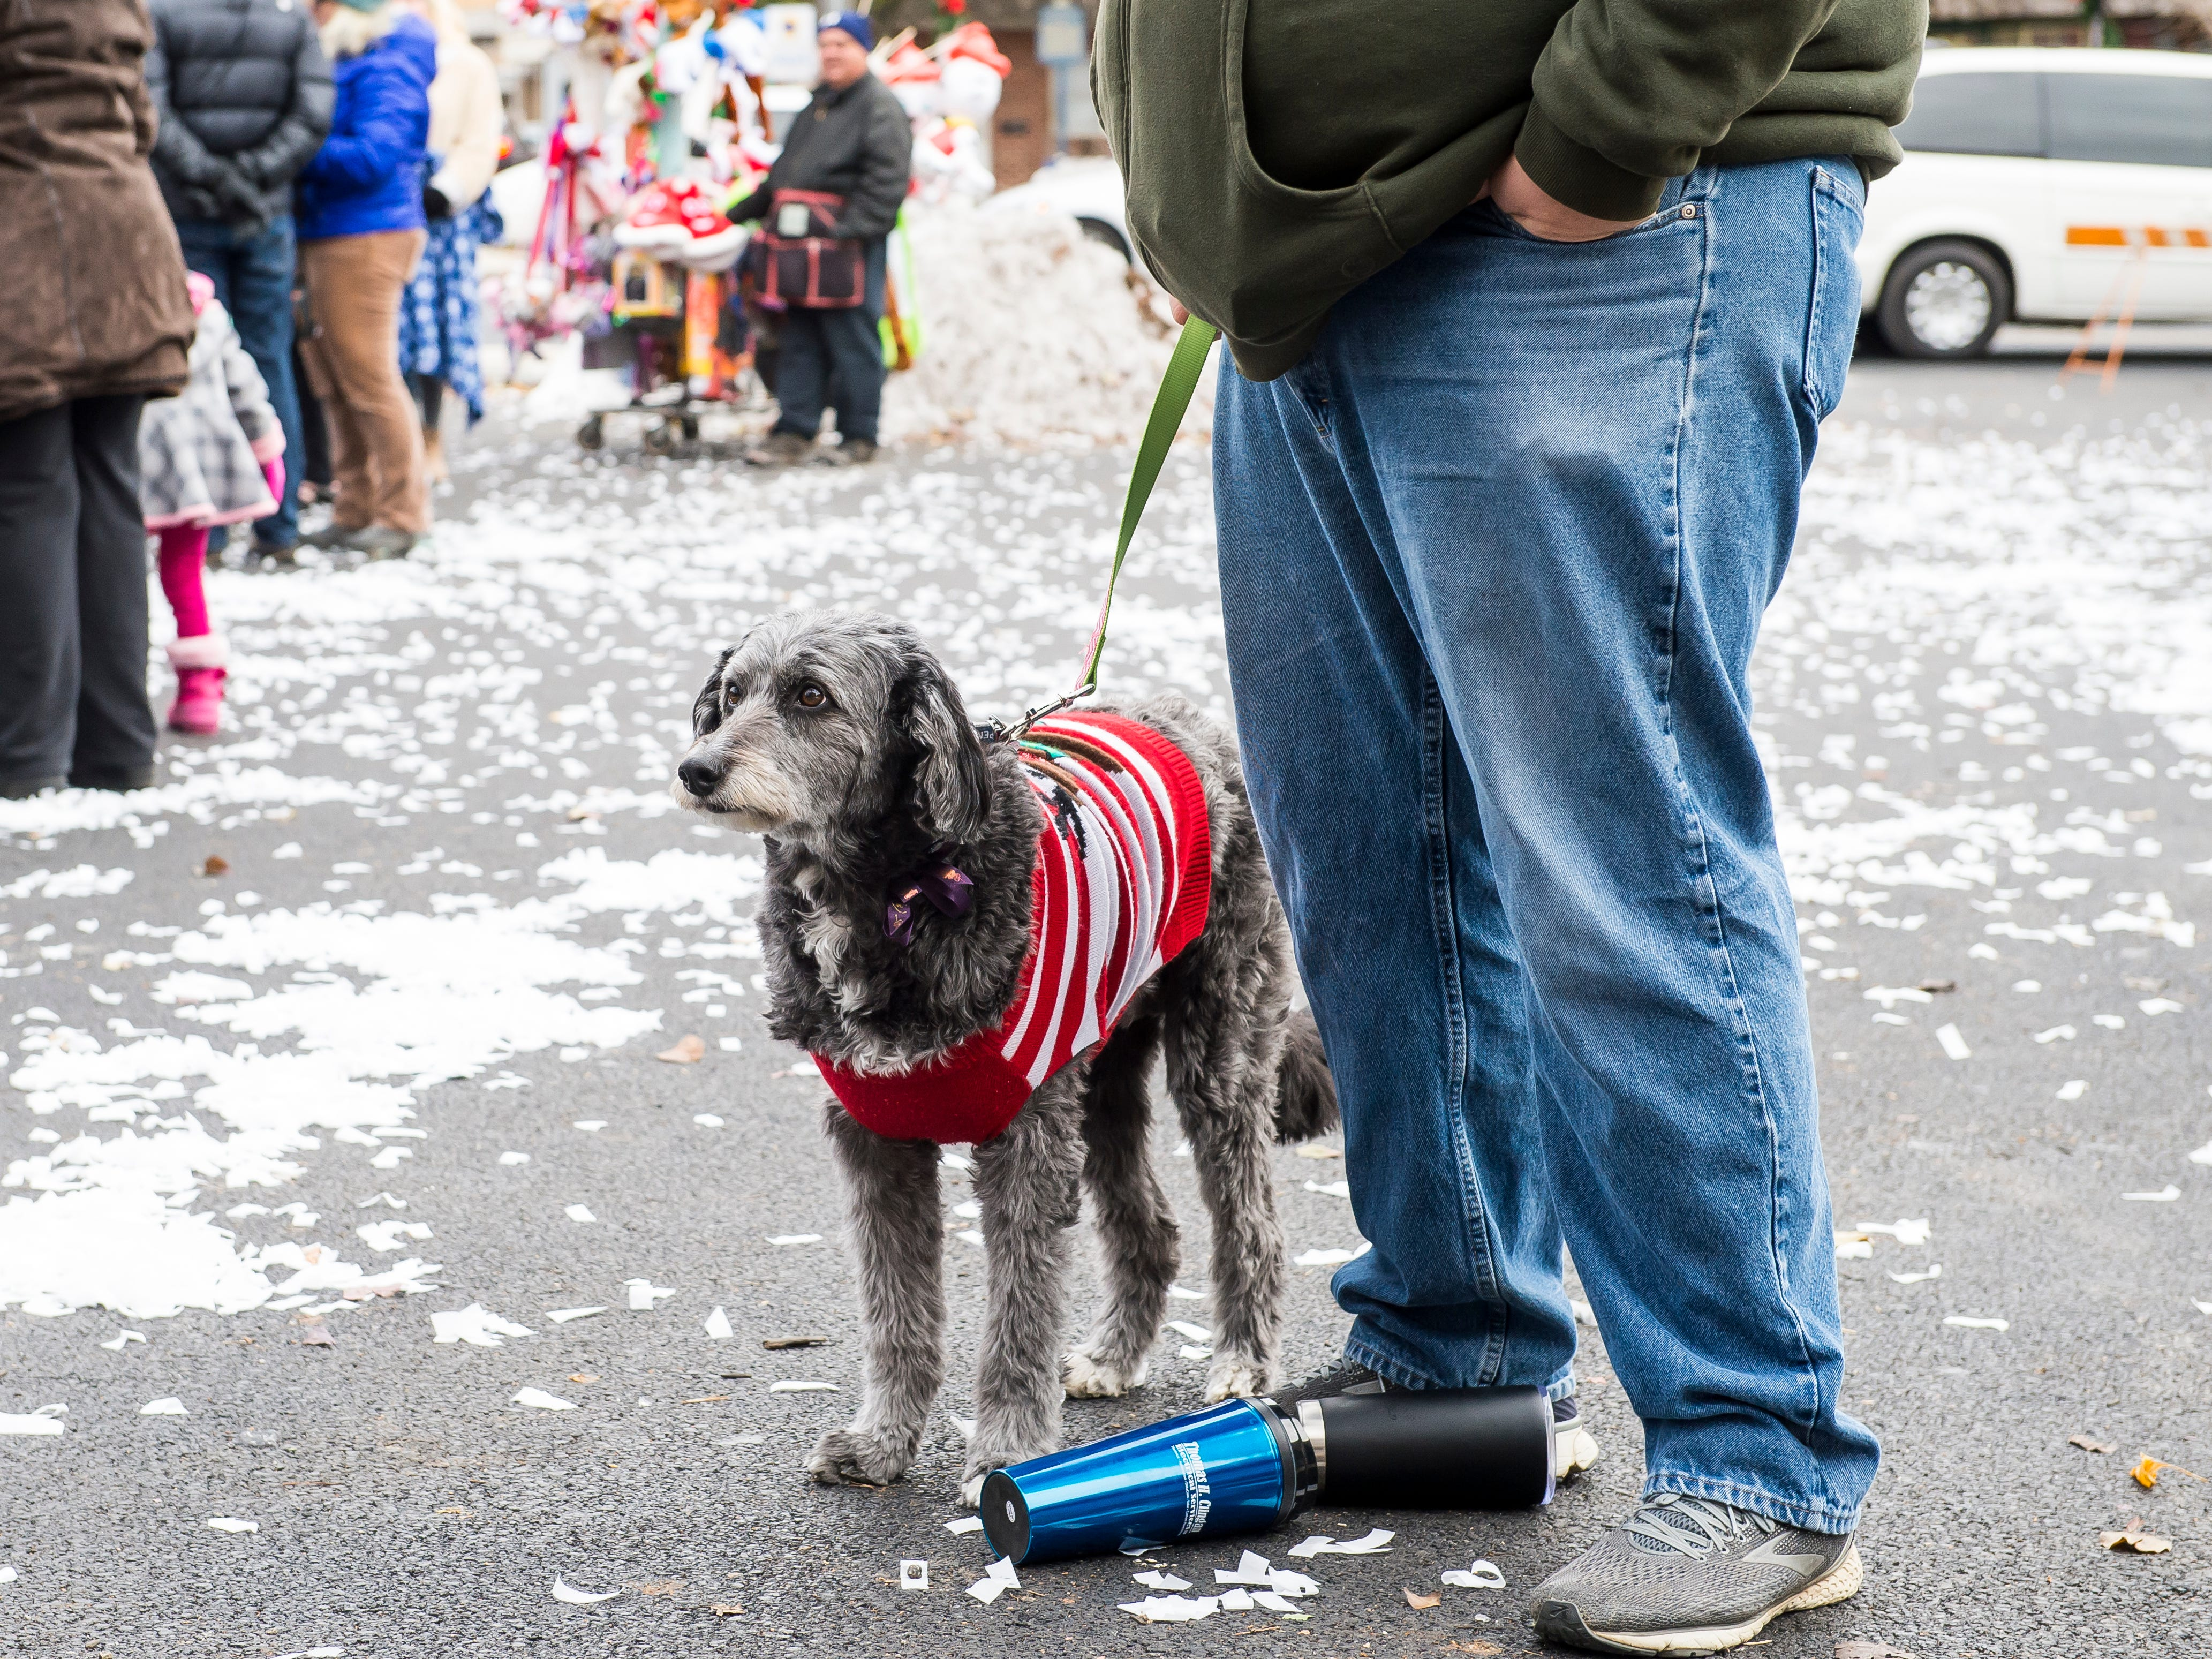 Sadie, a 5-year-old border poodle, and her owner, Vince Adams, stand near Santa's cabin following the annual Hanover Christmas parade on Friday, November, 23, 2018.